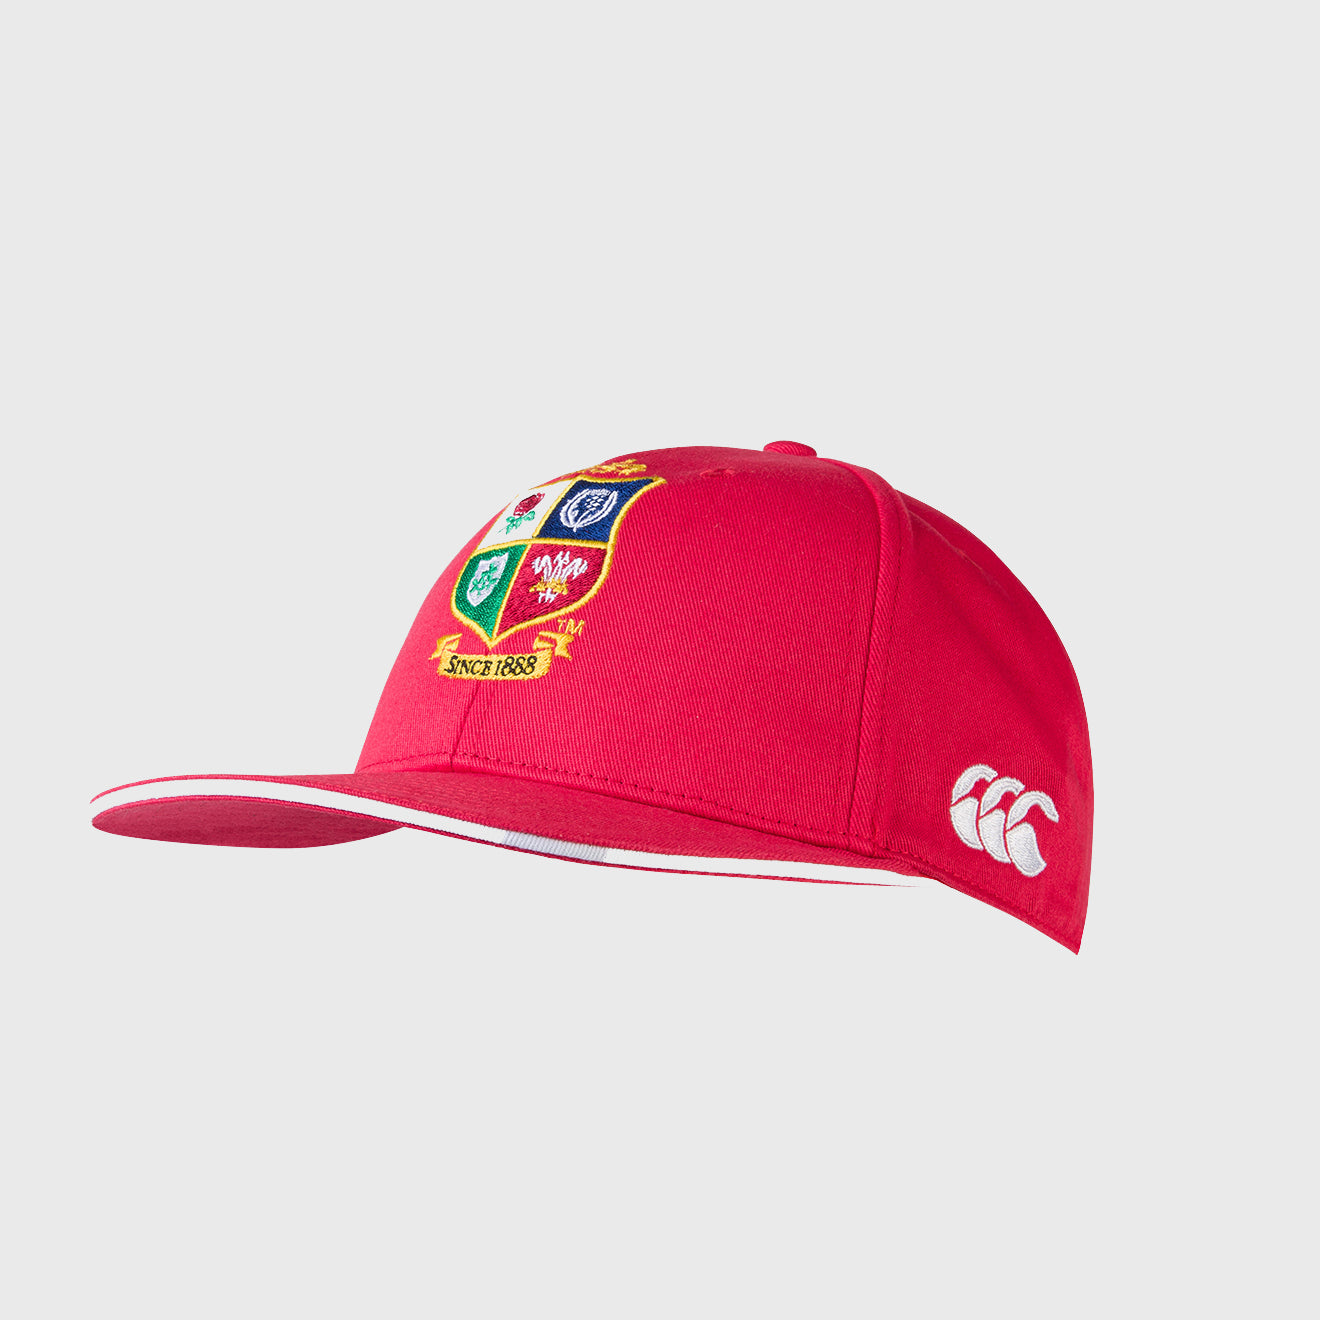 British & Irish Lions SA 2021 Cotton Drill Cap Red